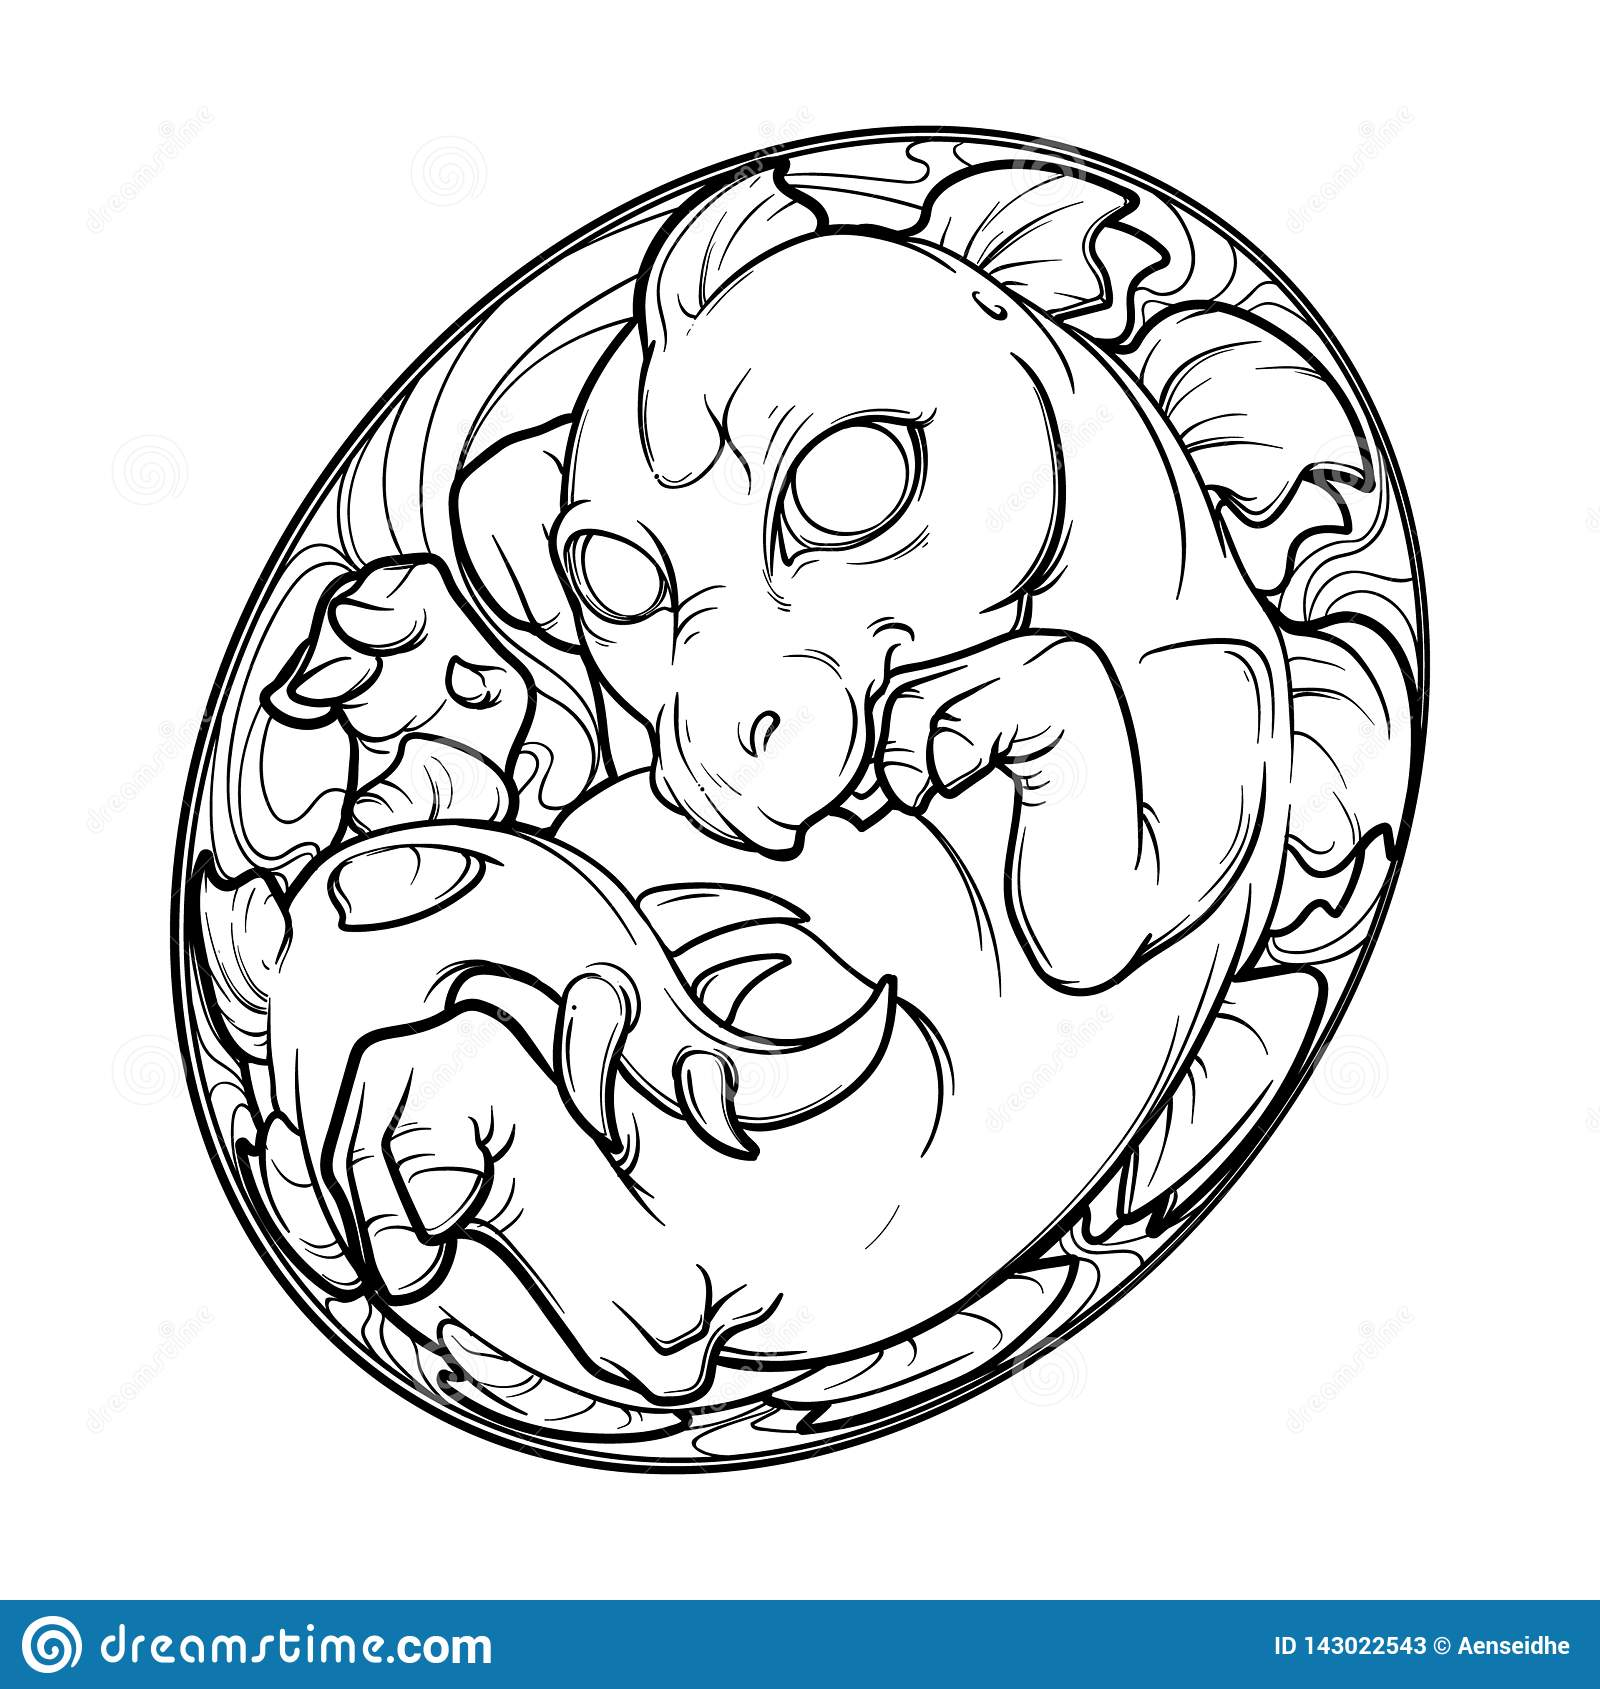 Baby Stegosaurus In The Egg Cute Animal Drawing Sketch Style